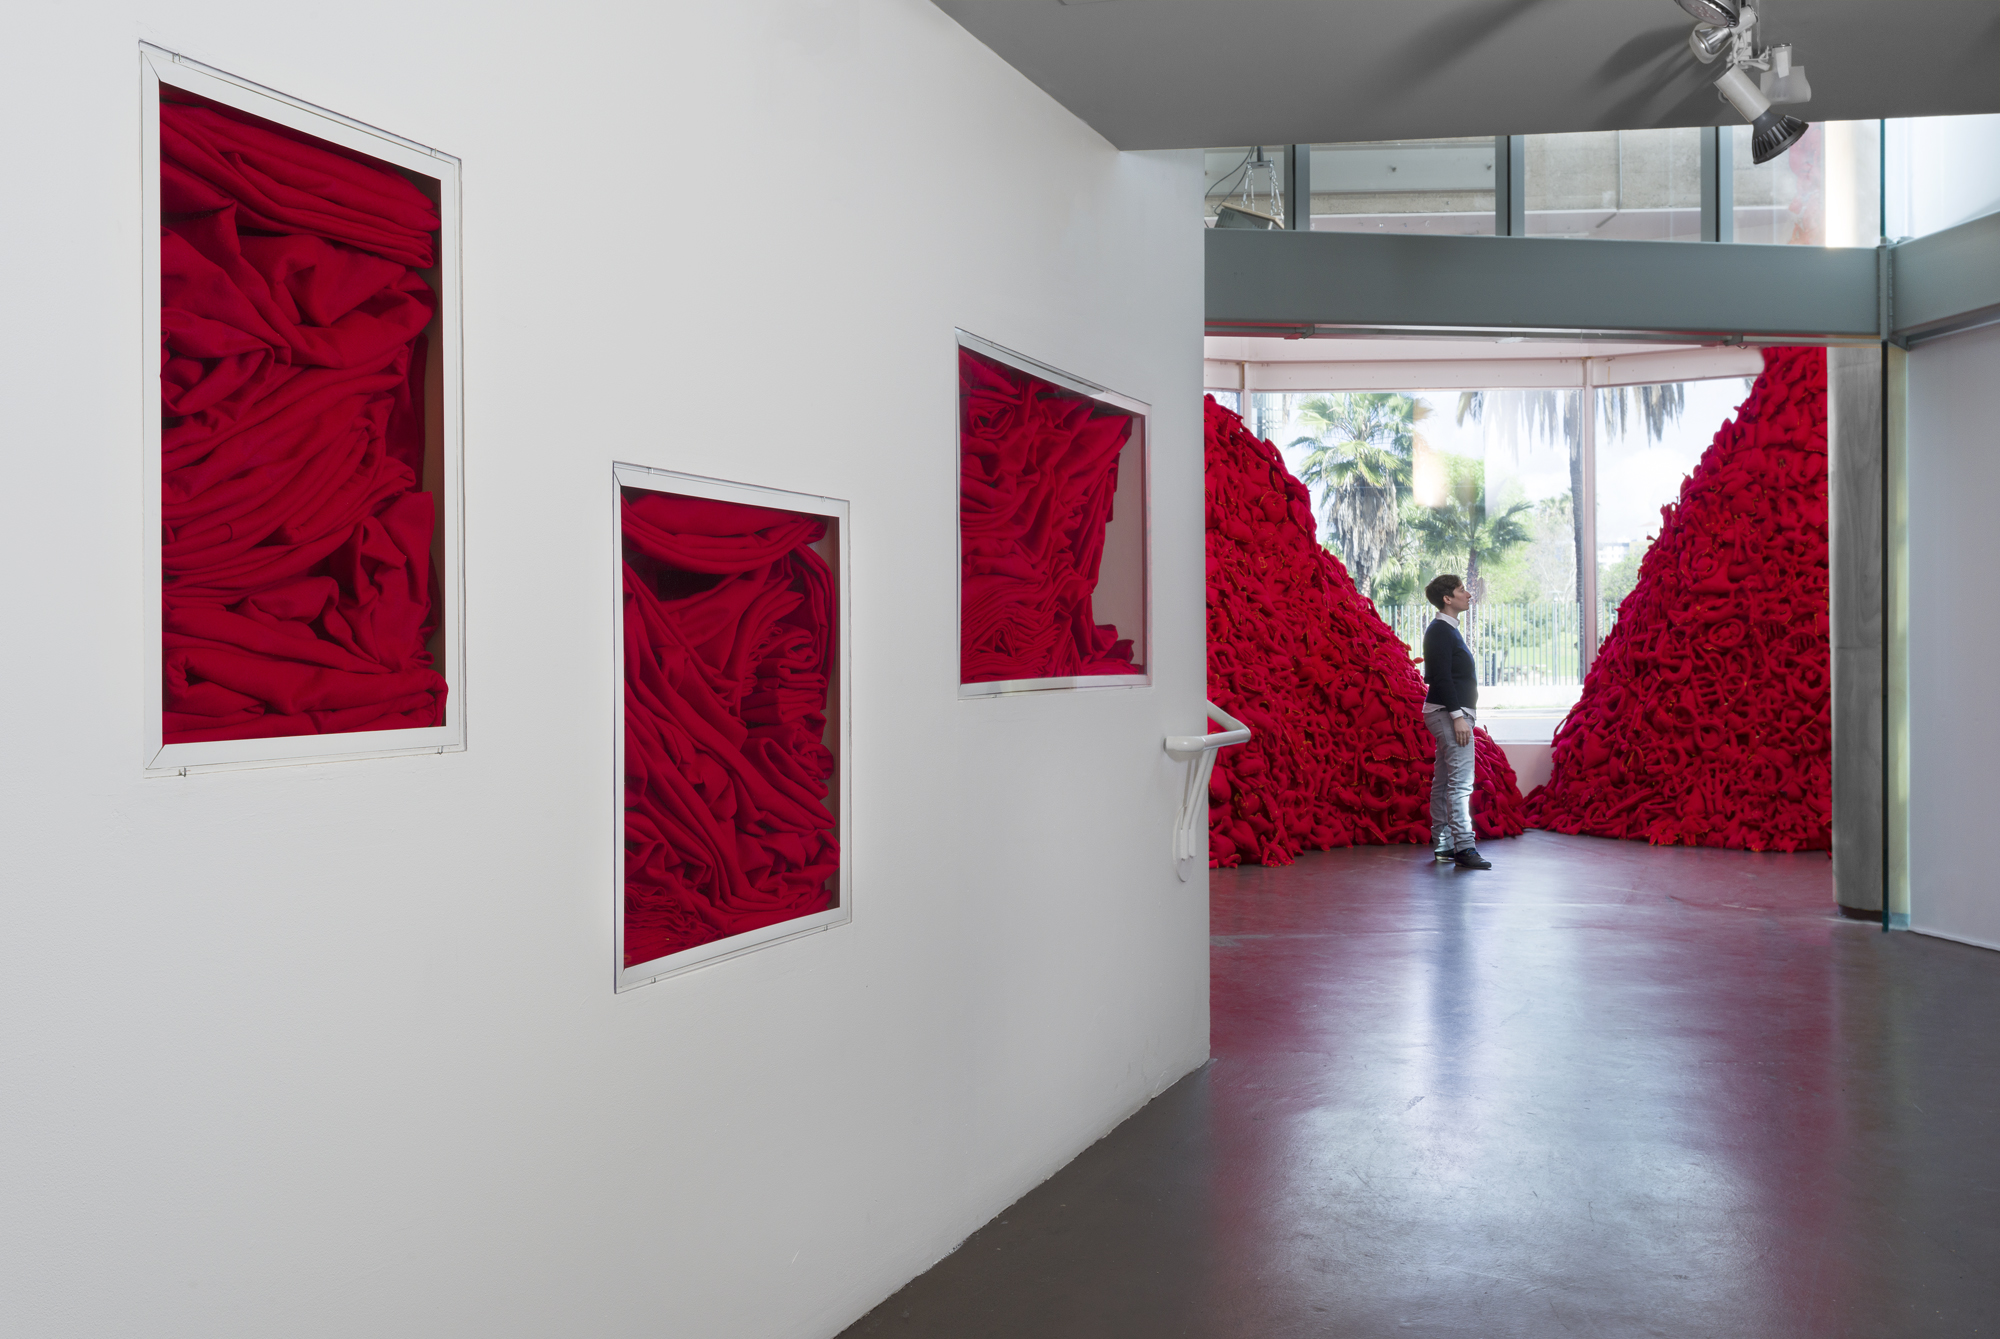 Installation View  (Craft & Folk Art Museum, 2015)   The Pile,  2014 Single Channel HD Video Projection with Sound (16mm Film), TRT 12:00, Looping; Digital C-Prints; Hand-Stitched Red Felt Objects Installation Dimensions Variable